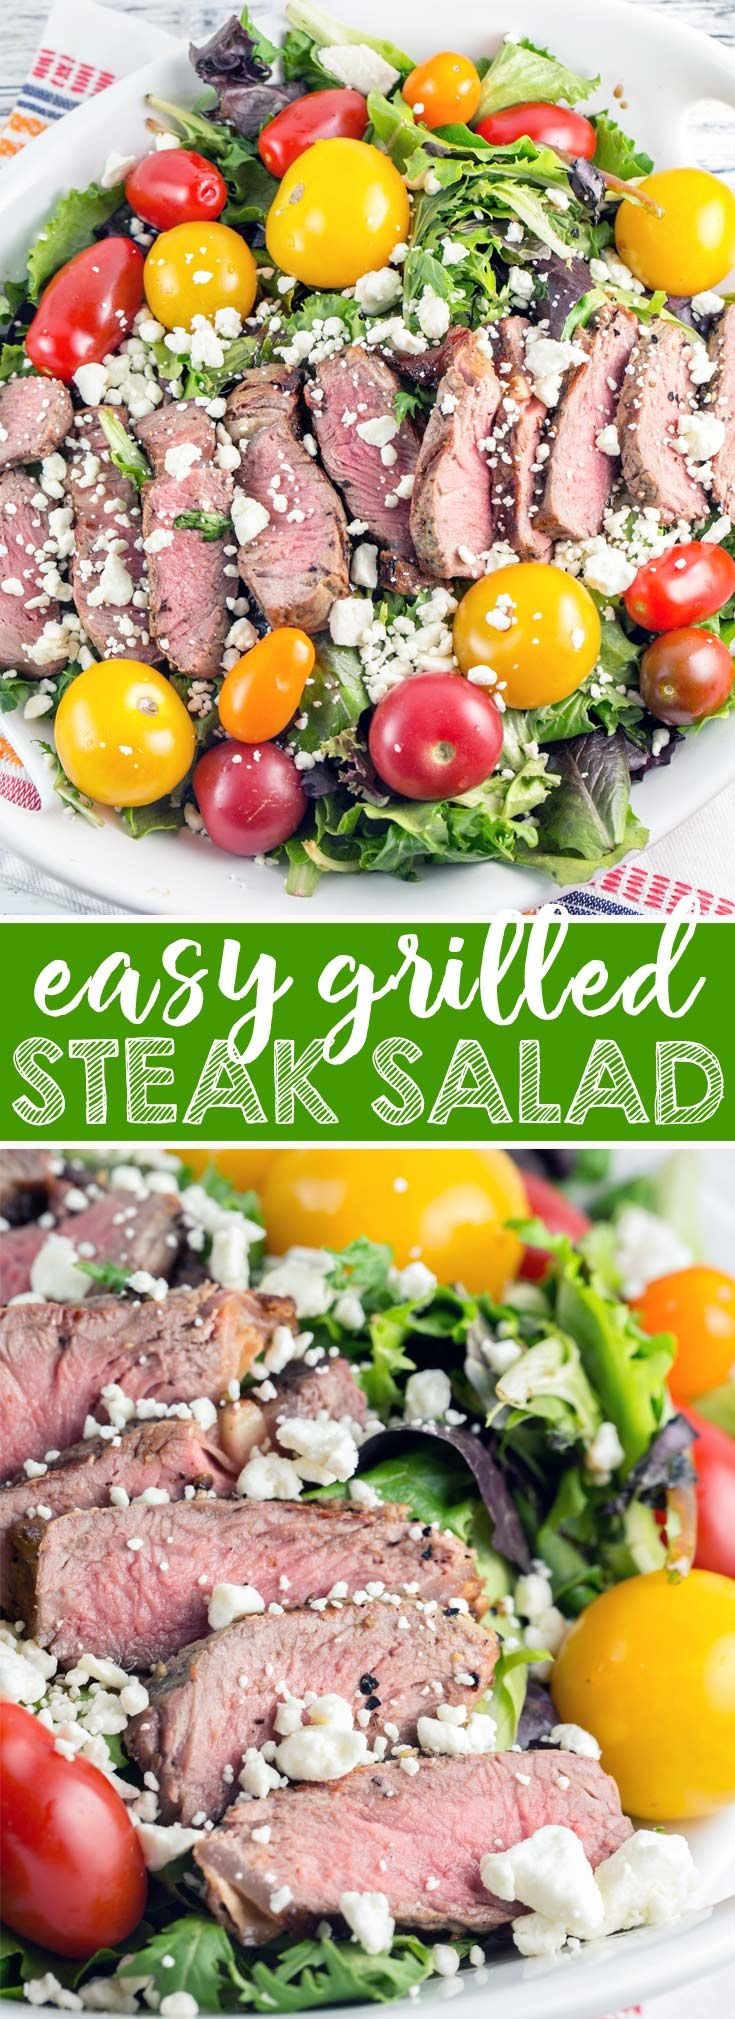 Grilled Steak Salad: grilled steak on a bed of leafy greens with homemade honey mustard vinaigrette - the perfect summer hot weather dinner! {Bunsen Burner Bakery} via @bnsnbrnrbakery